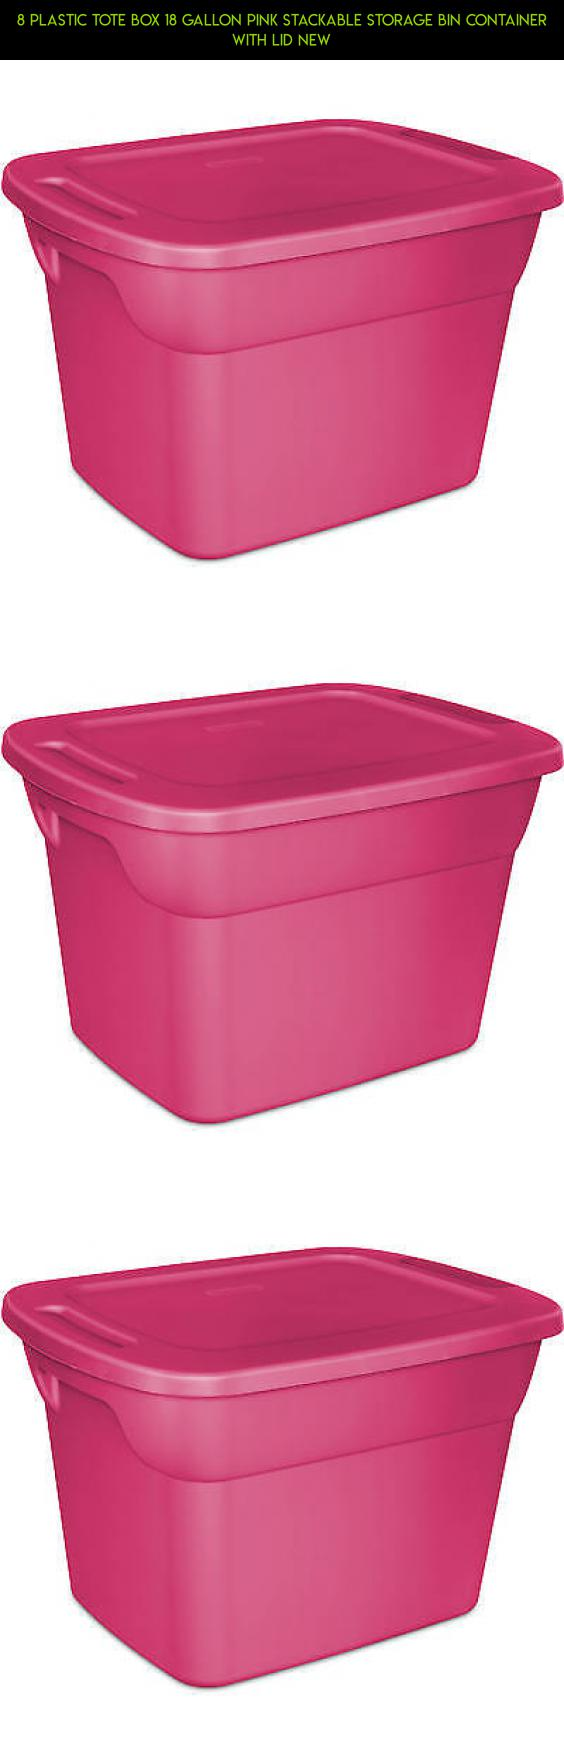 8 Plastic Tote Box 18 Gallon Pink Stackable Storage Bin Container With Lid  NEW #plans